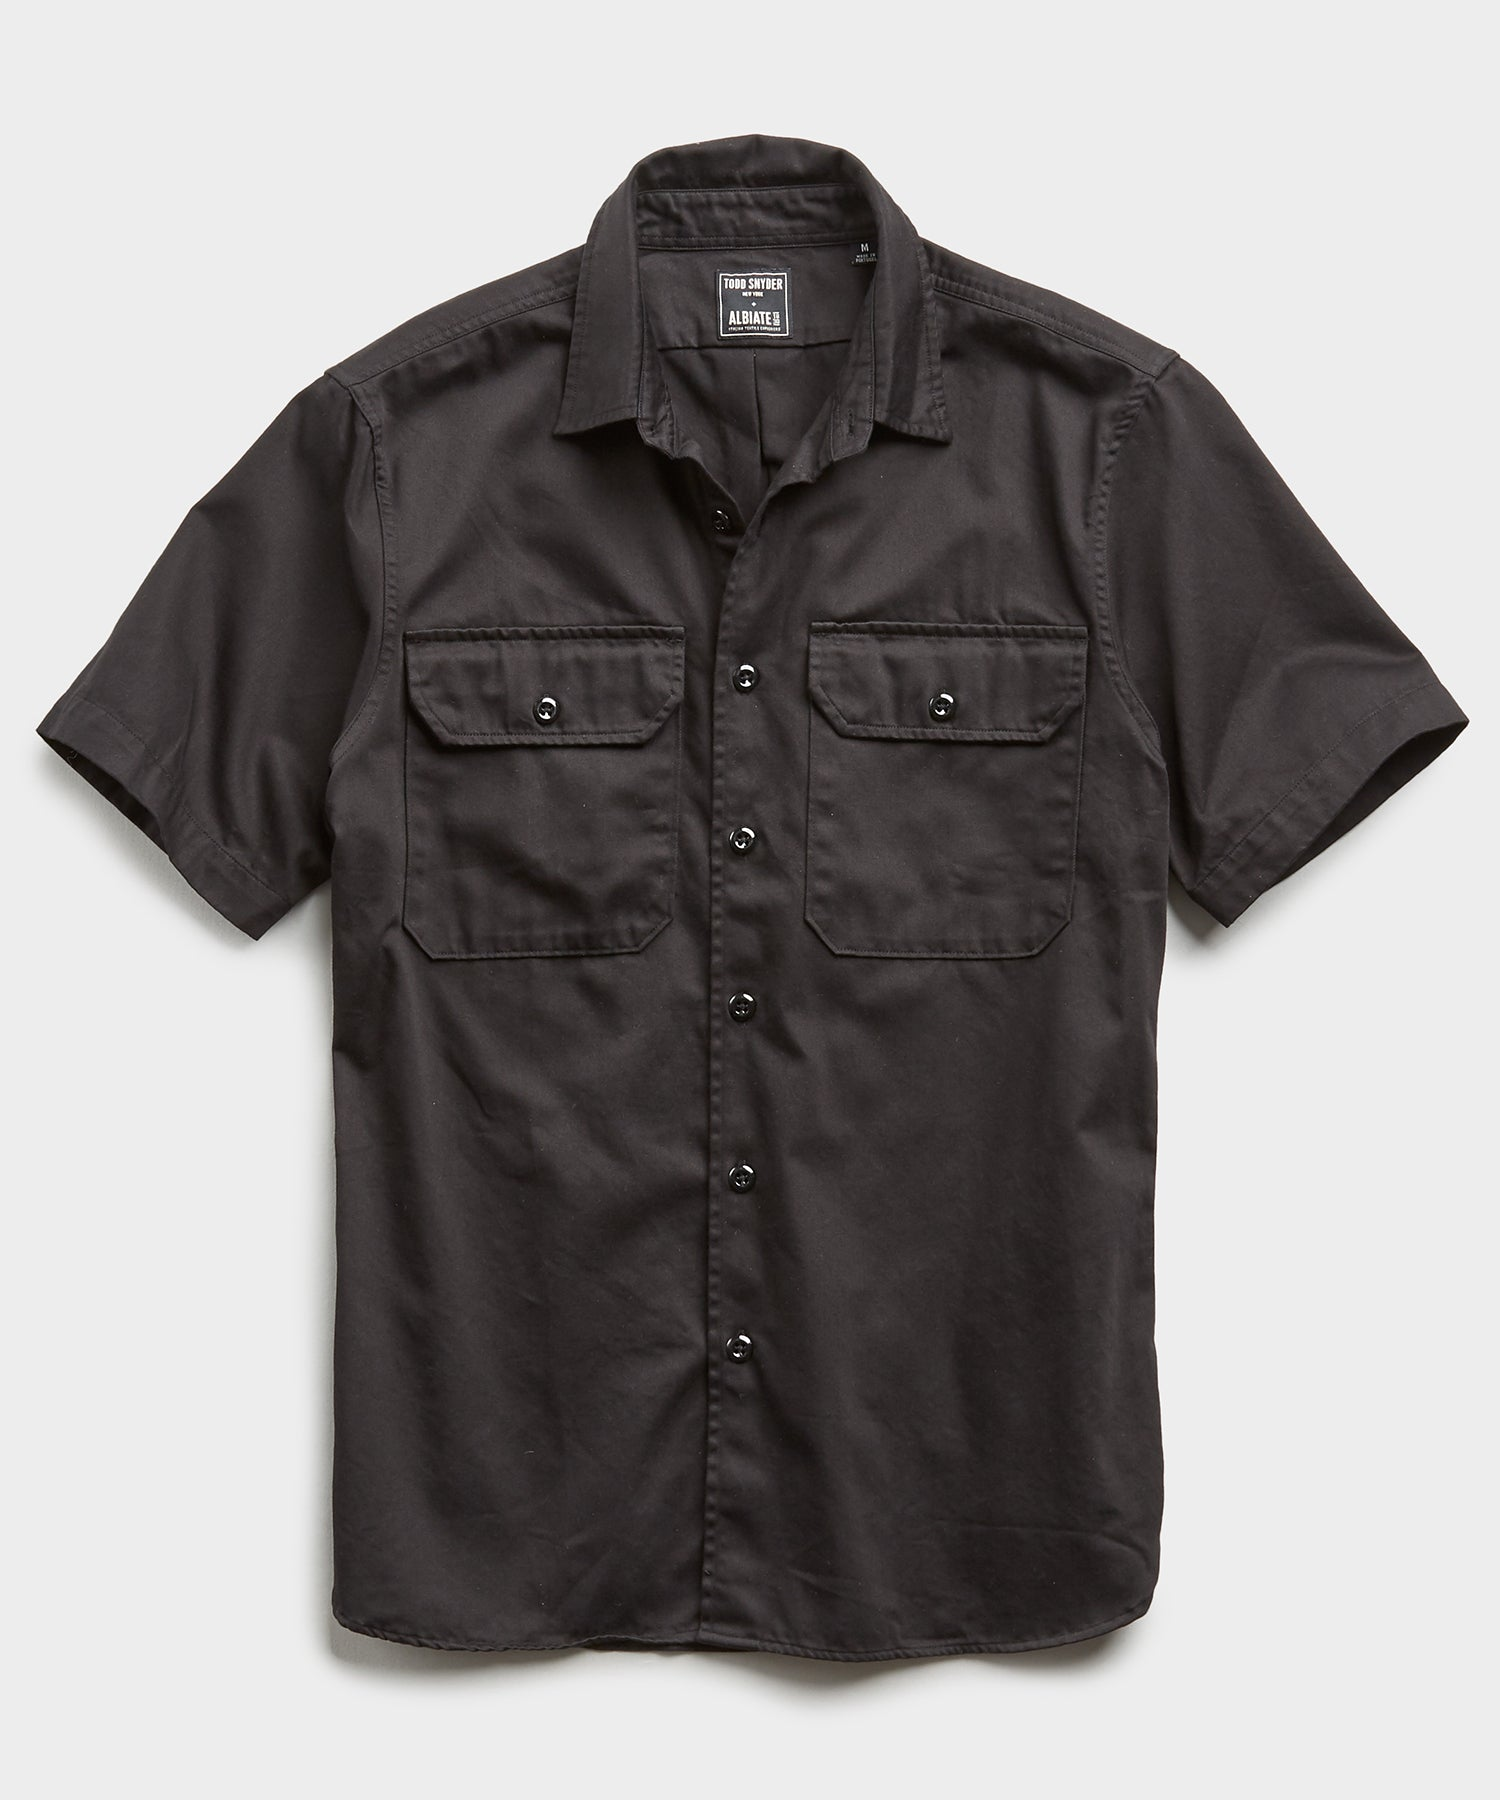 Italian Two Pocket Utility Short Sleeve Shirt in Black